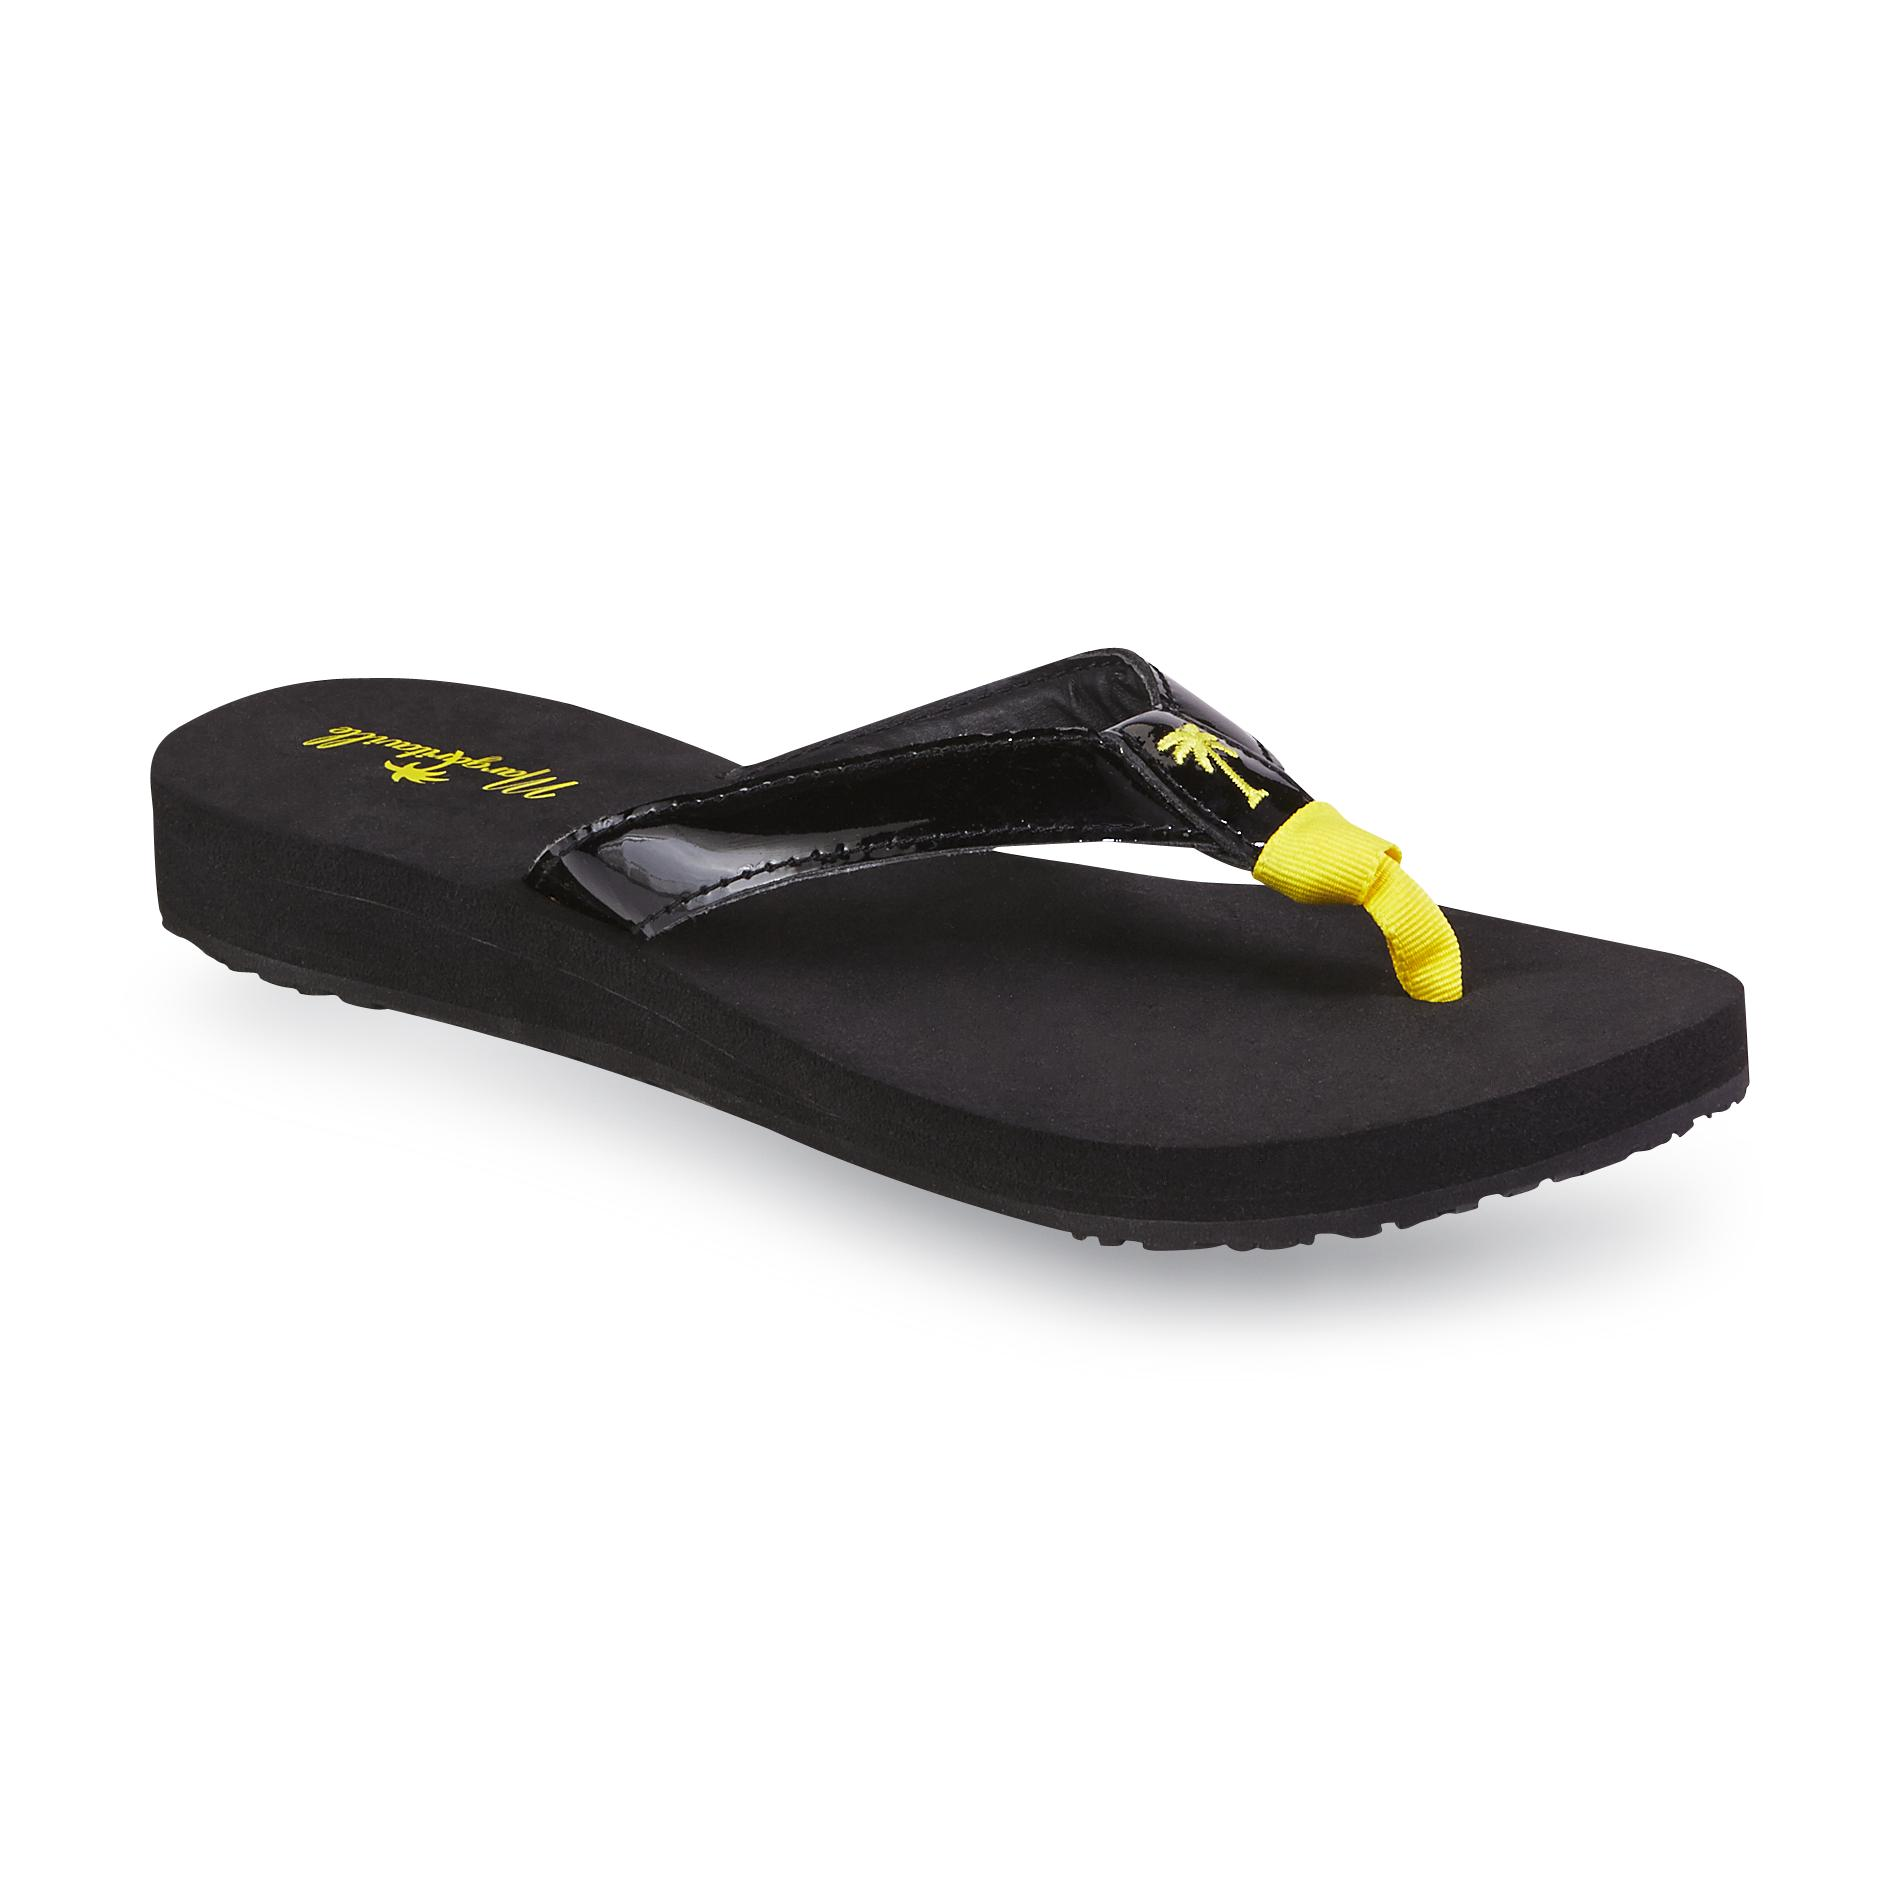 Margaritaville Women's Mezzanine Black/Yellow Flip-Flop